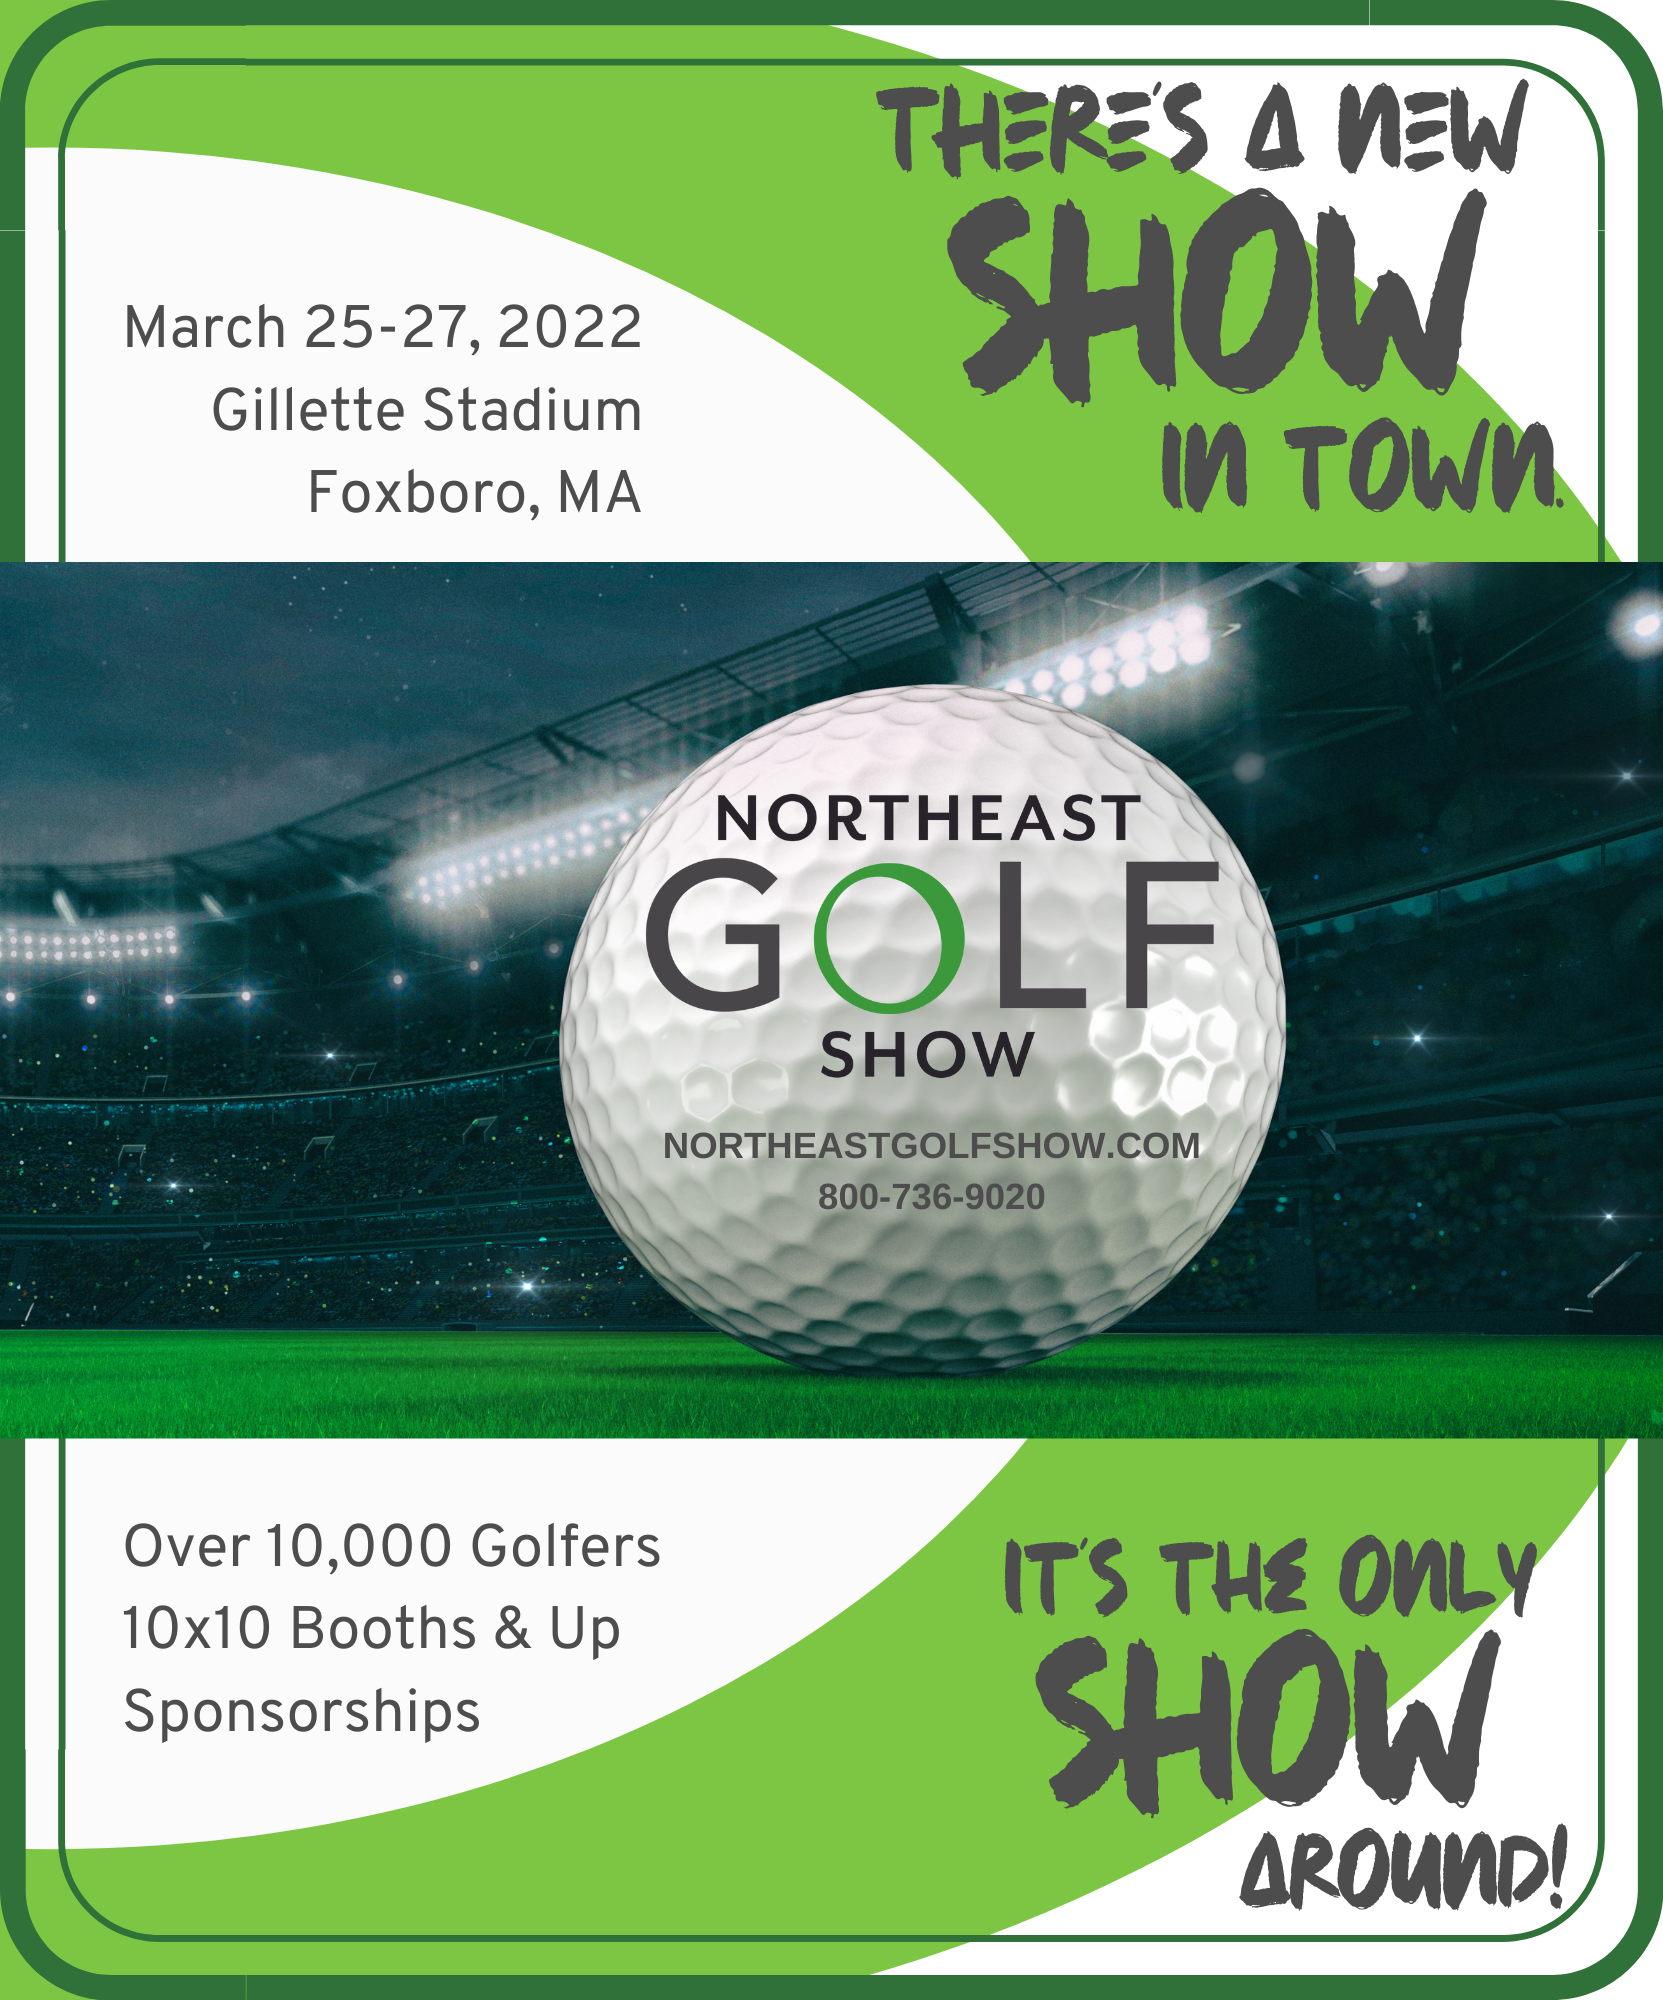 Northeast Golf Show Coming to Gillette in Foxboro, MA in 2022 and beyond!